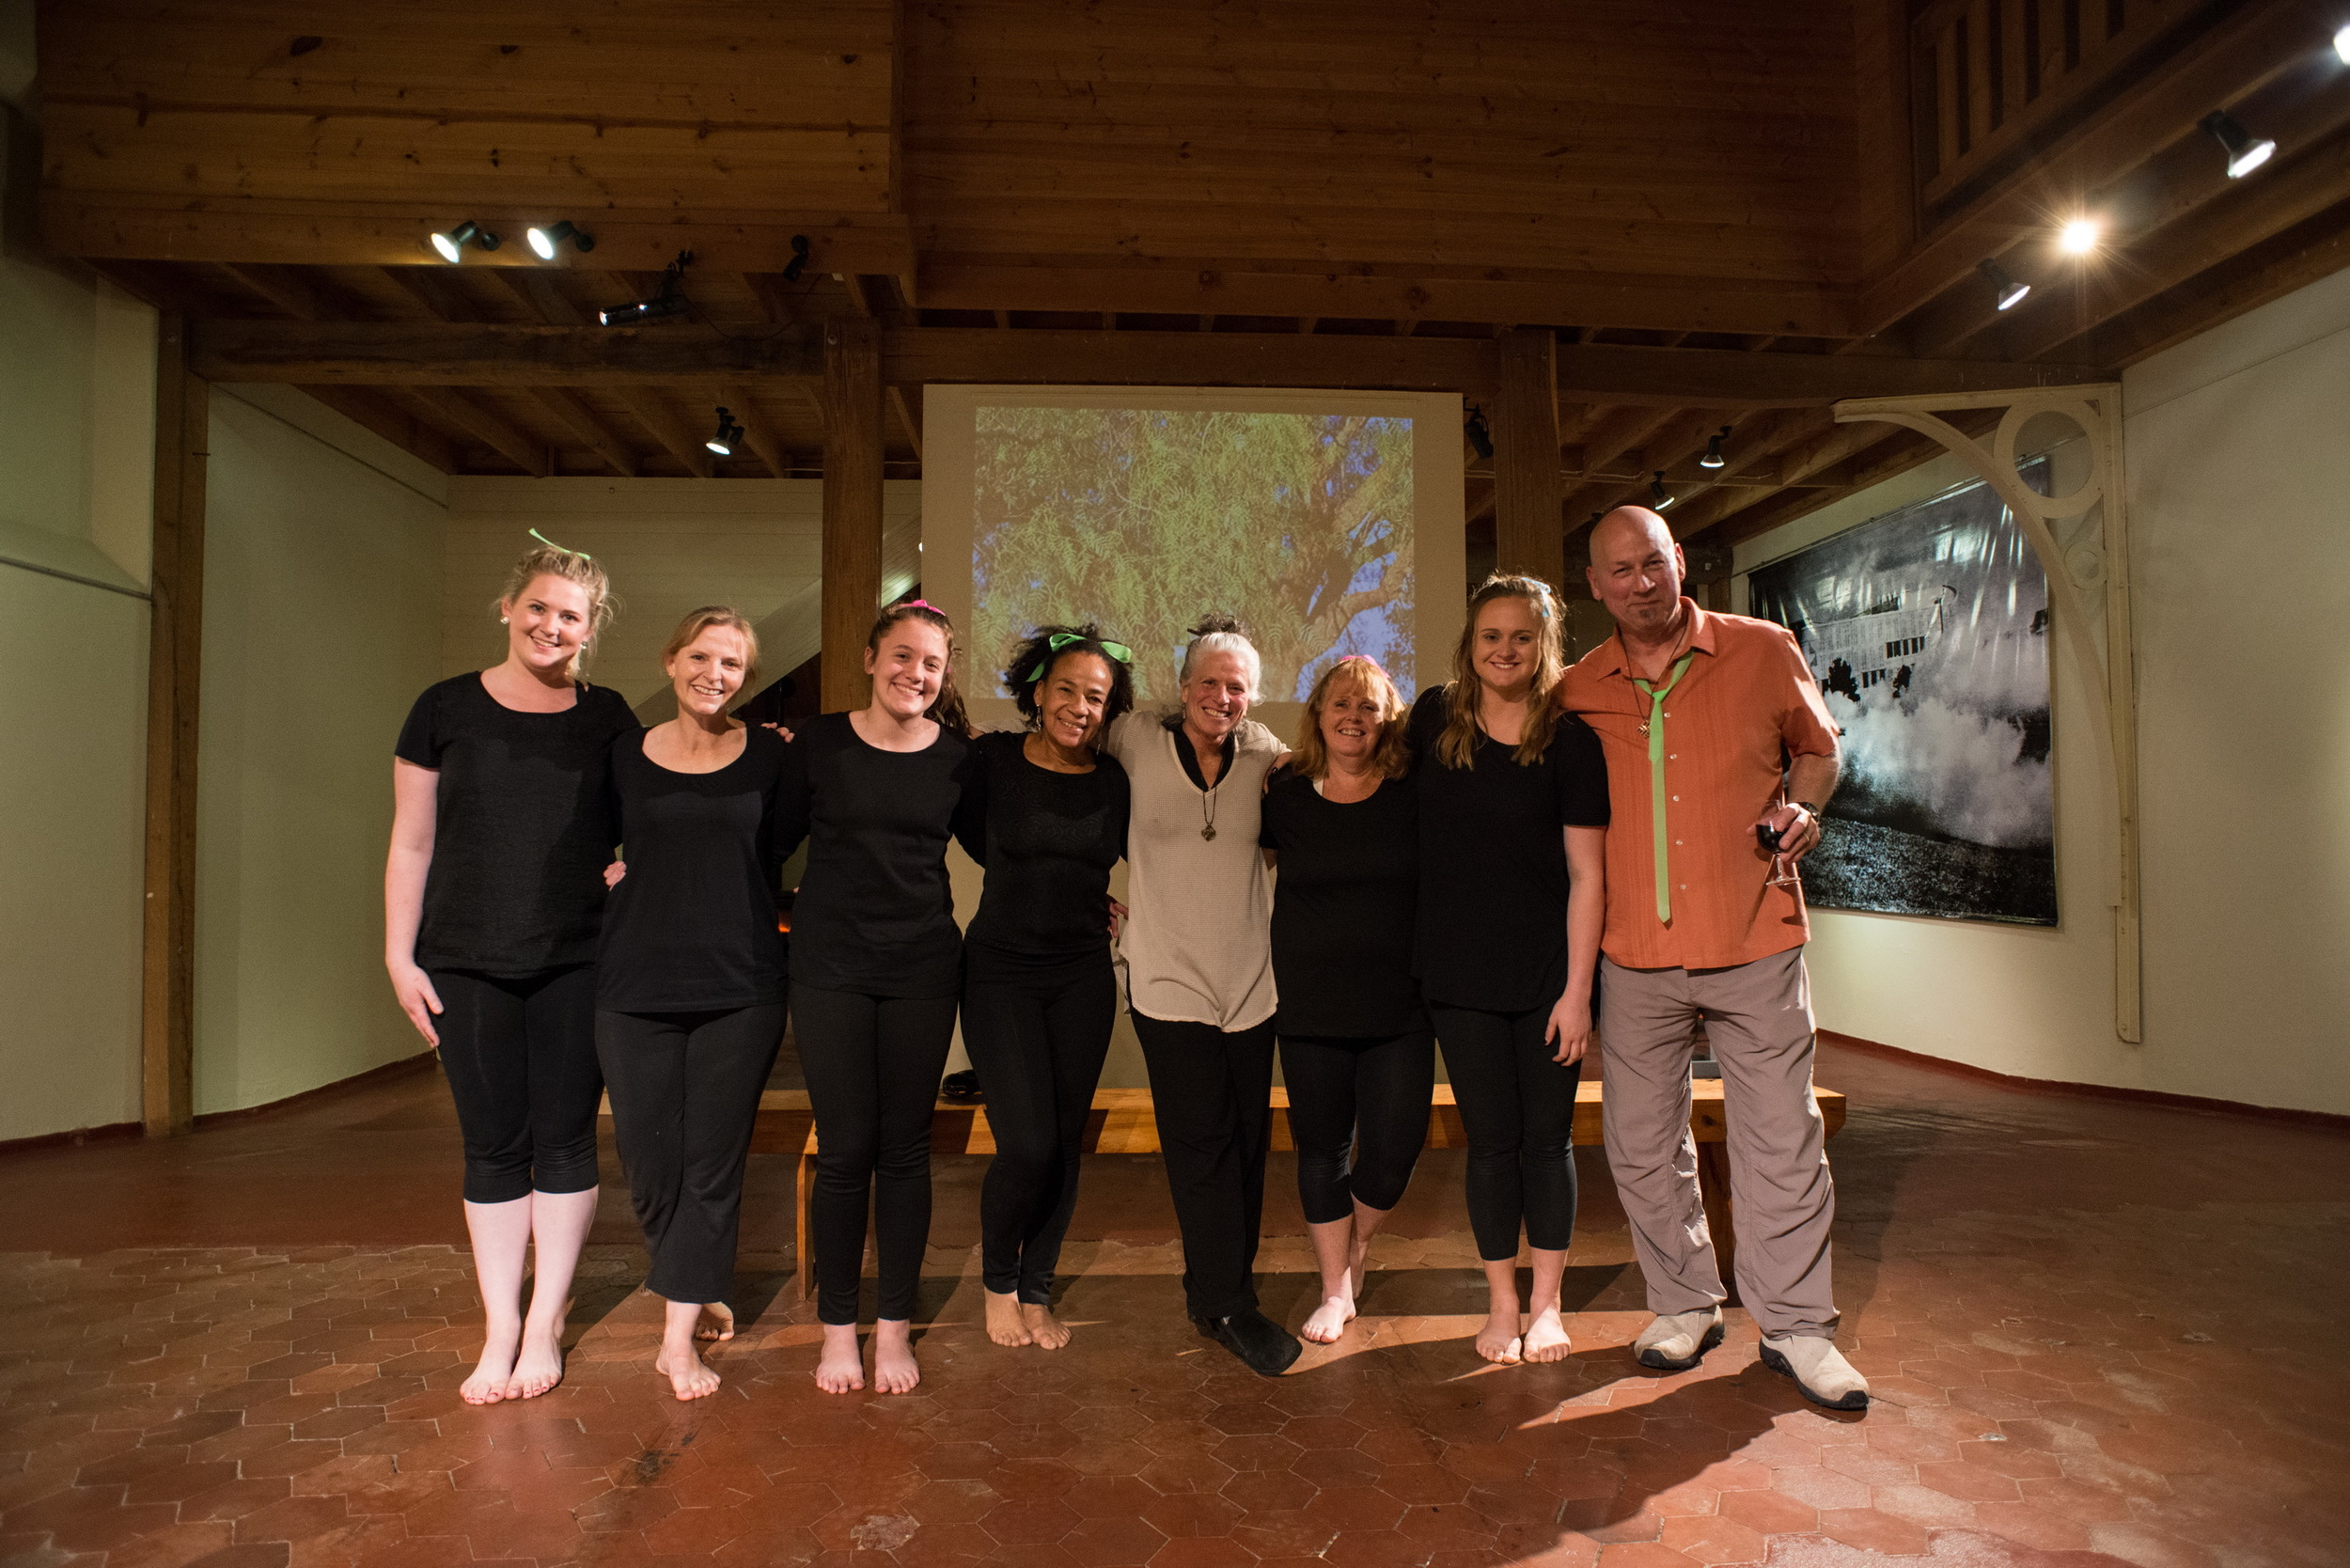 """Body and Soul Dancers and Josephine A Garibaldi and Paul Zmolek at the end of the performance of collaboratively choreographed work """"The Place Where I Start"""""""